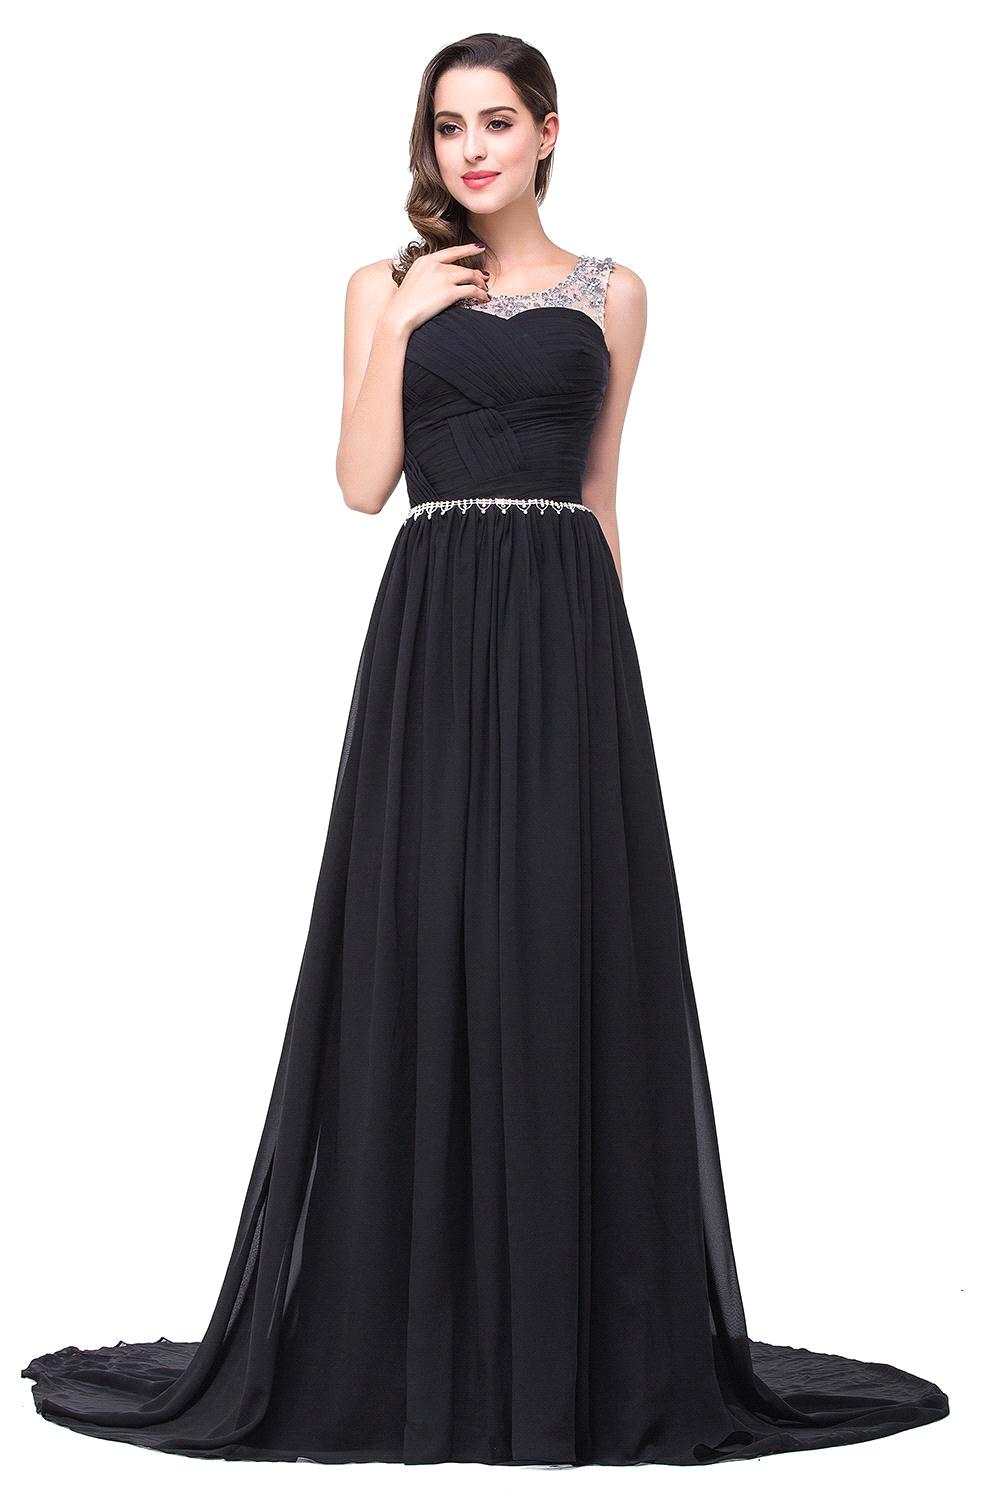 Compare Prices on Cheap Black Evening Dress- Online Shopping/Buy ...